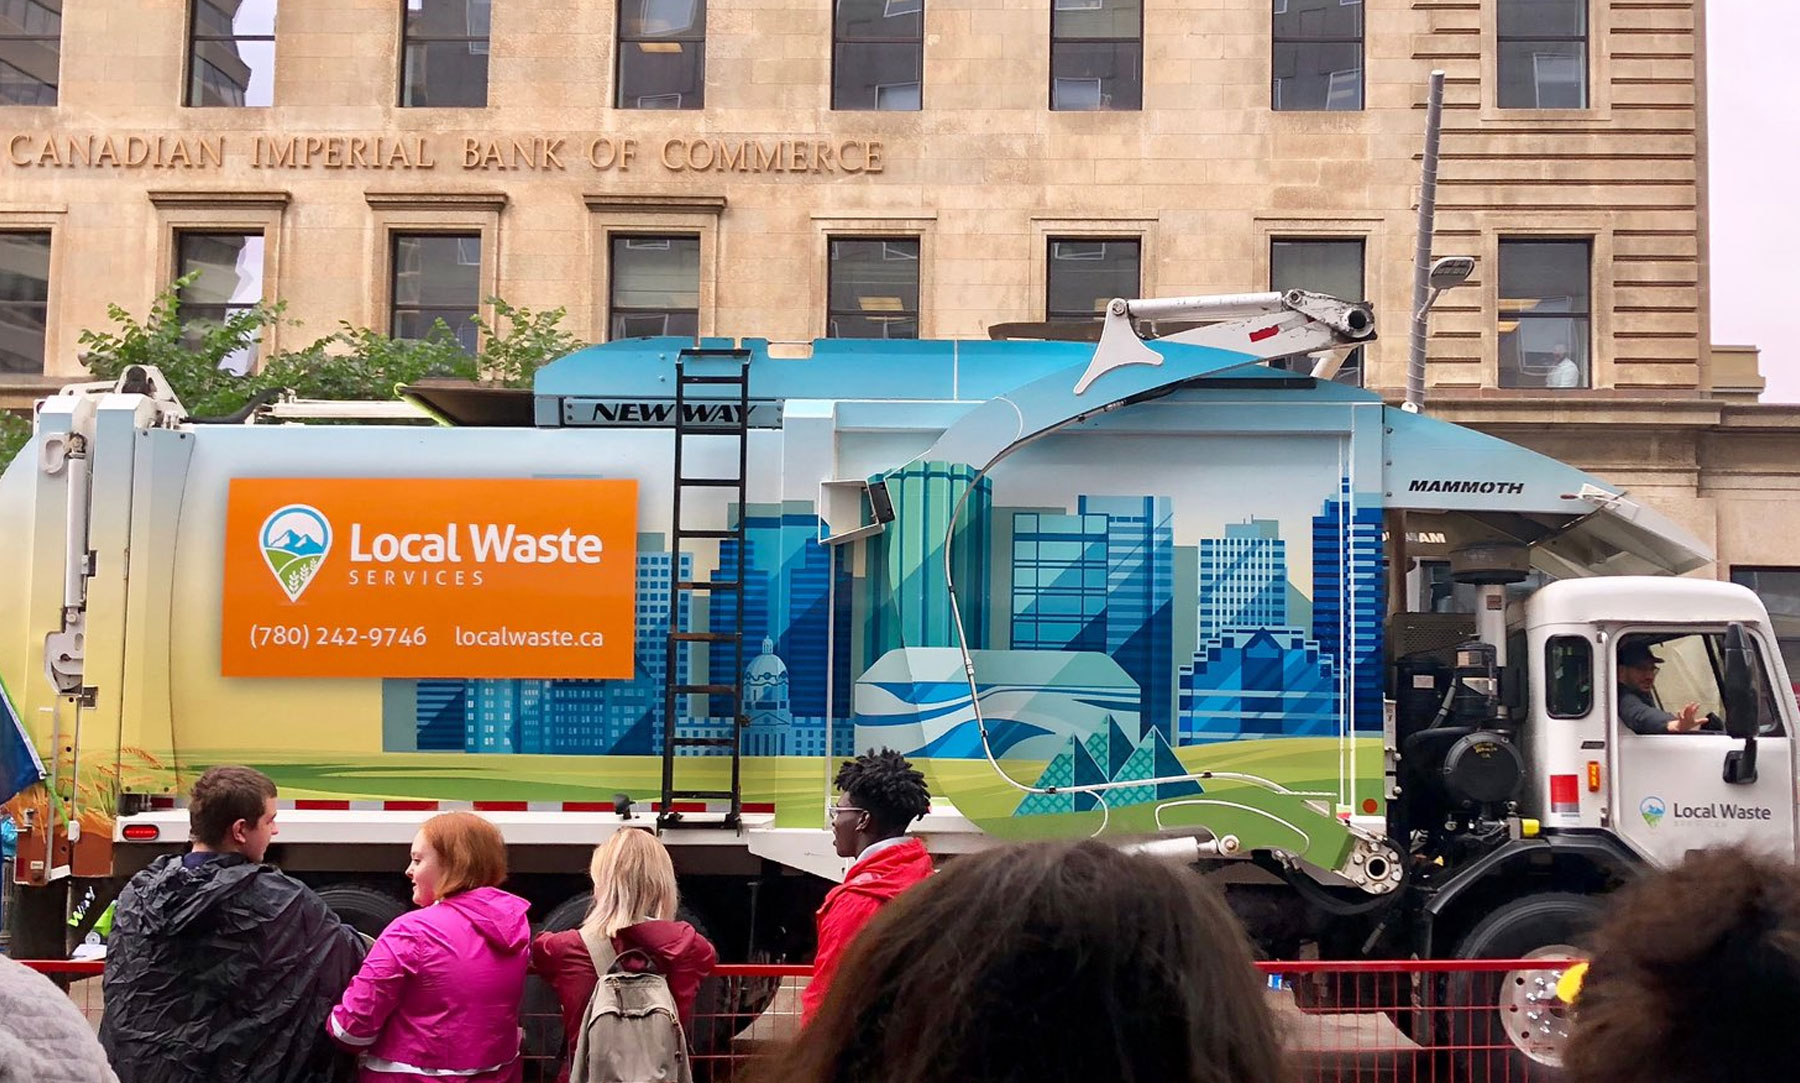 Local Waste Services Corp. Completes Founding Acquisition